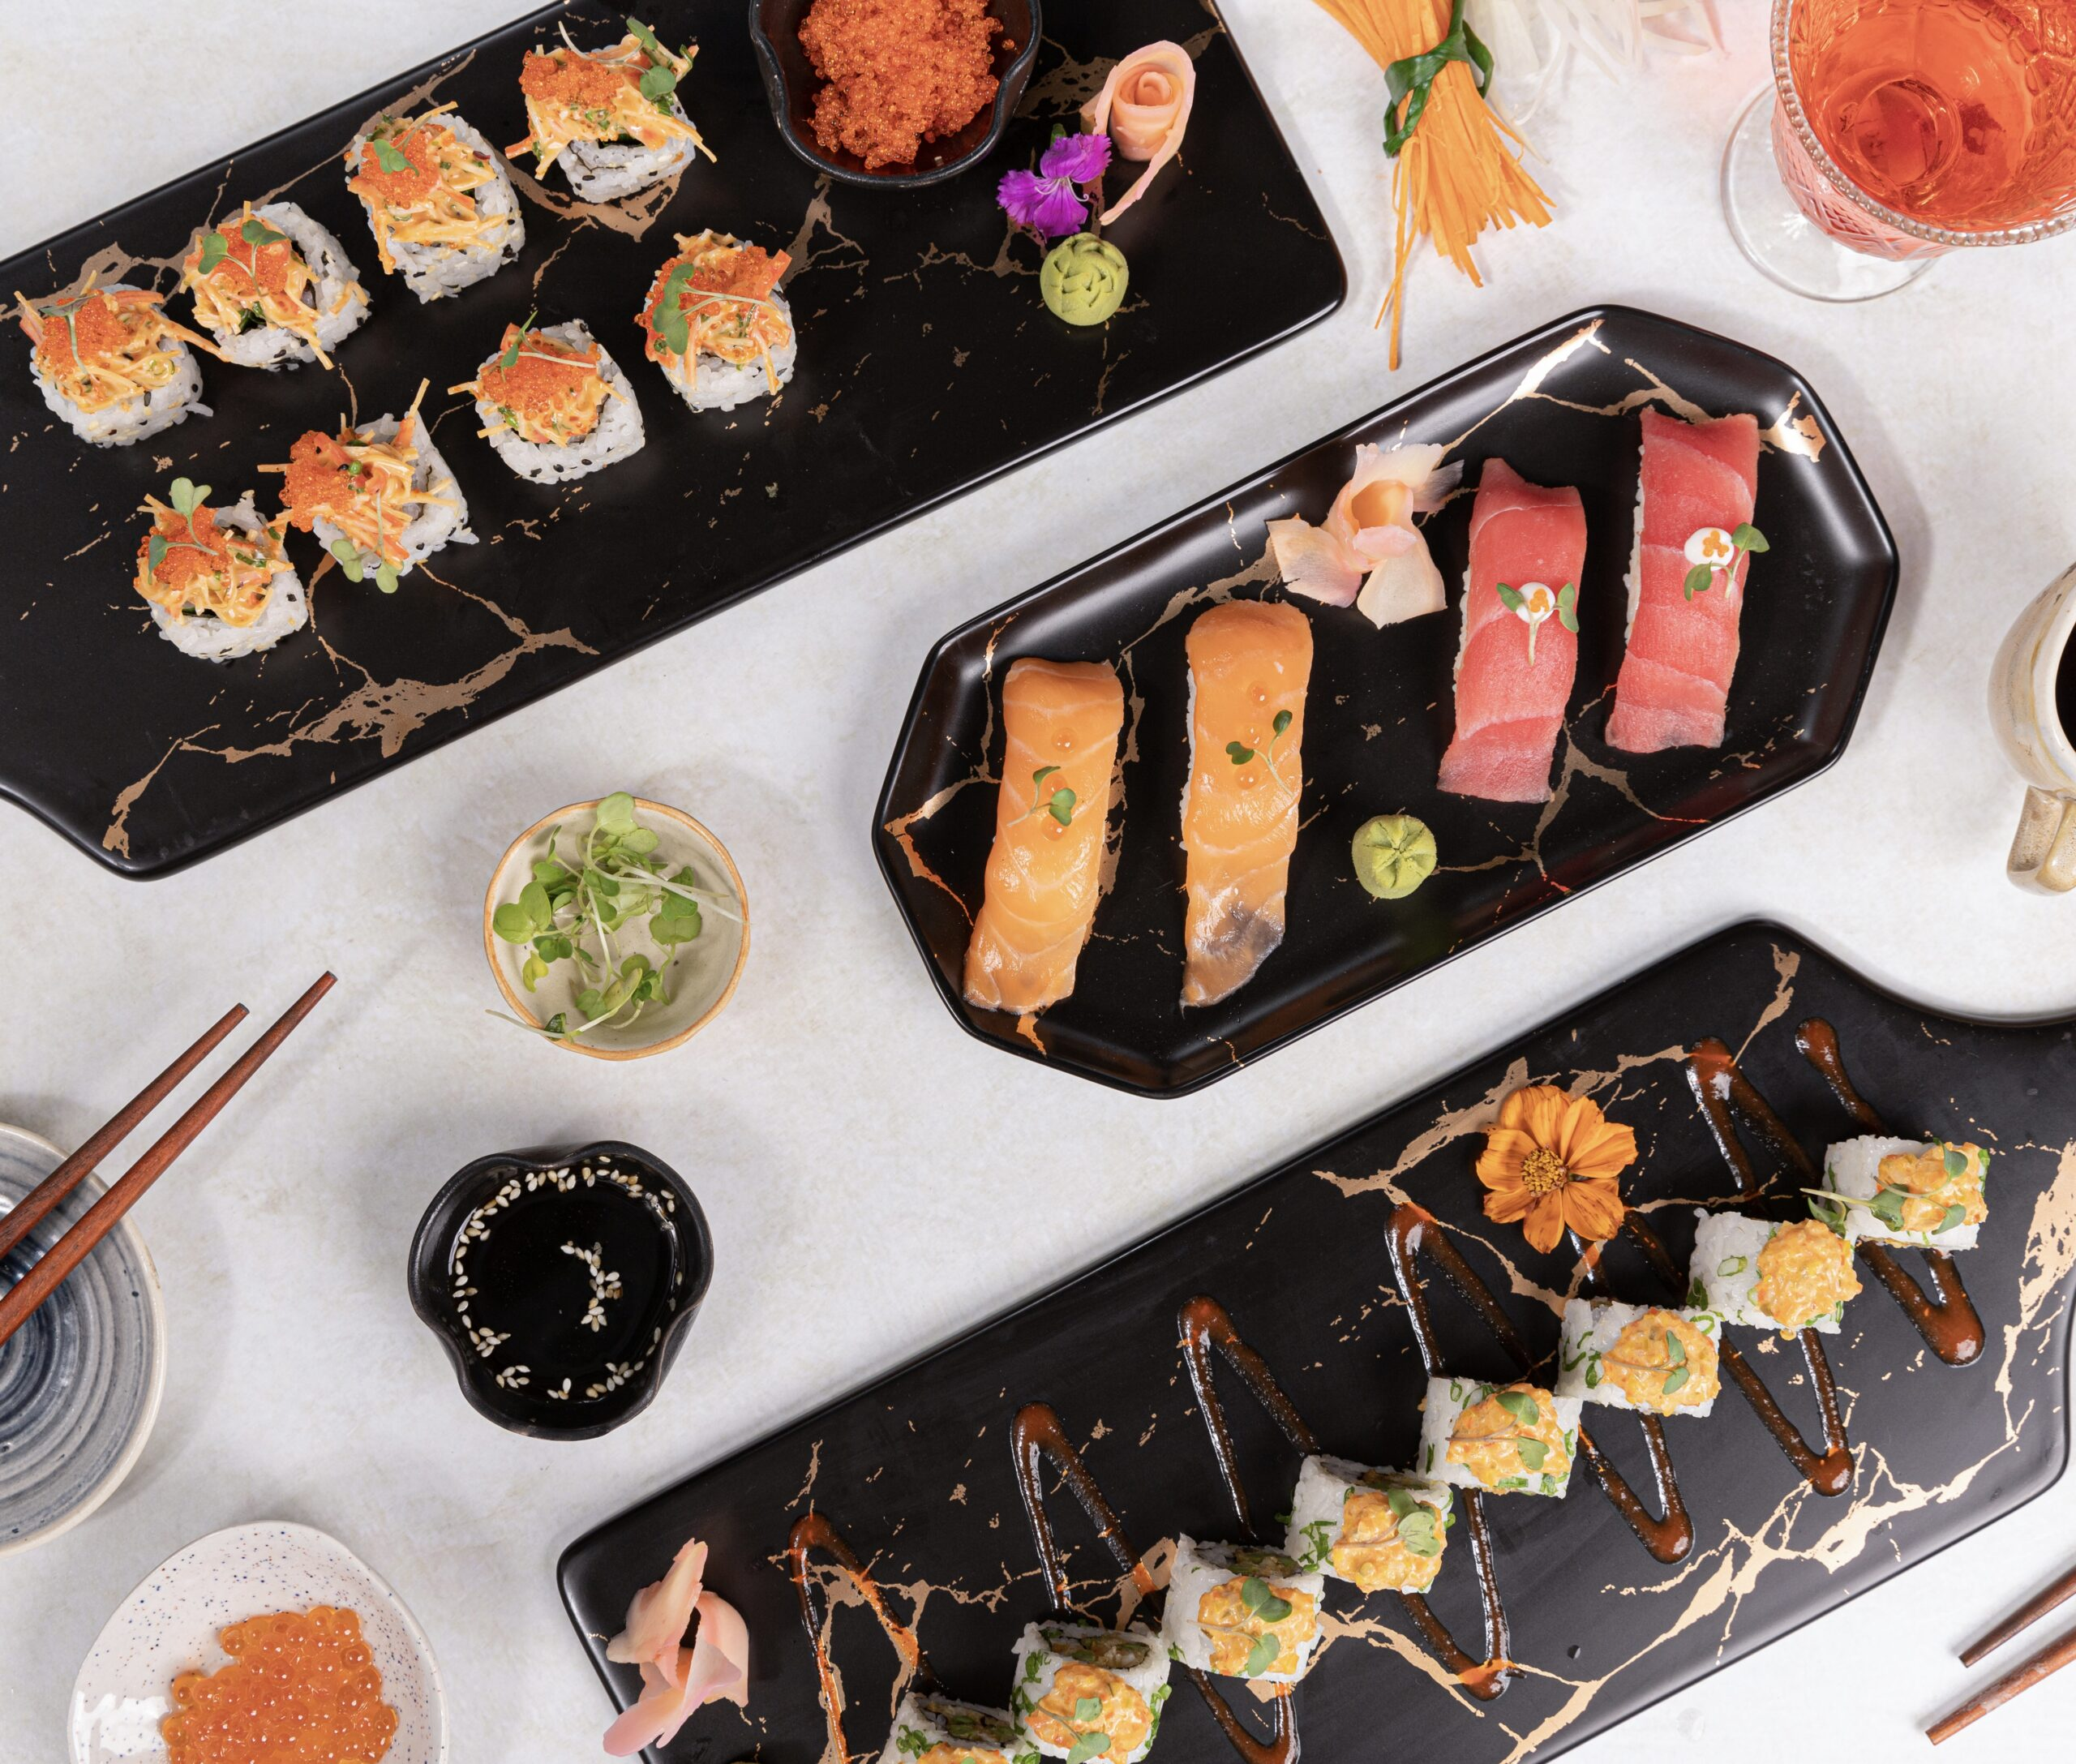 8 new places that are worth trying for foodies